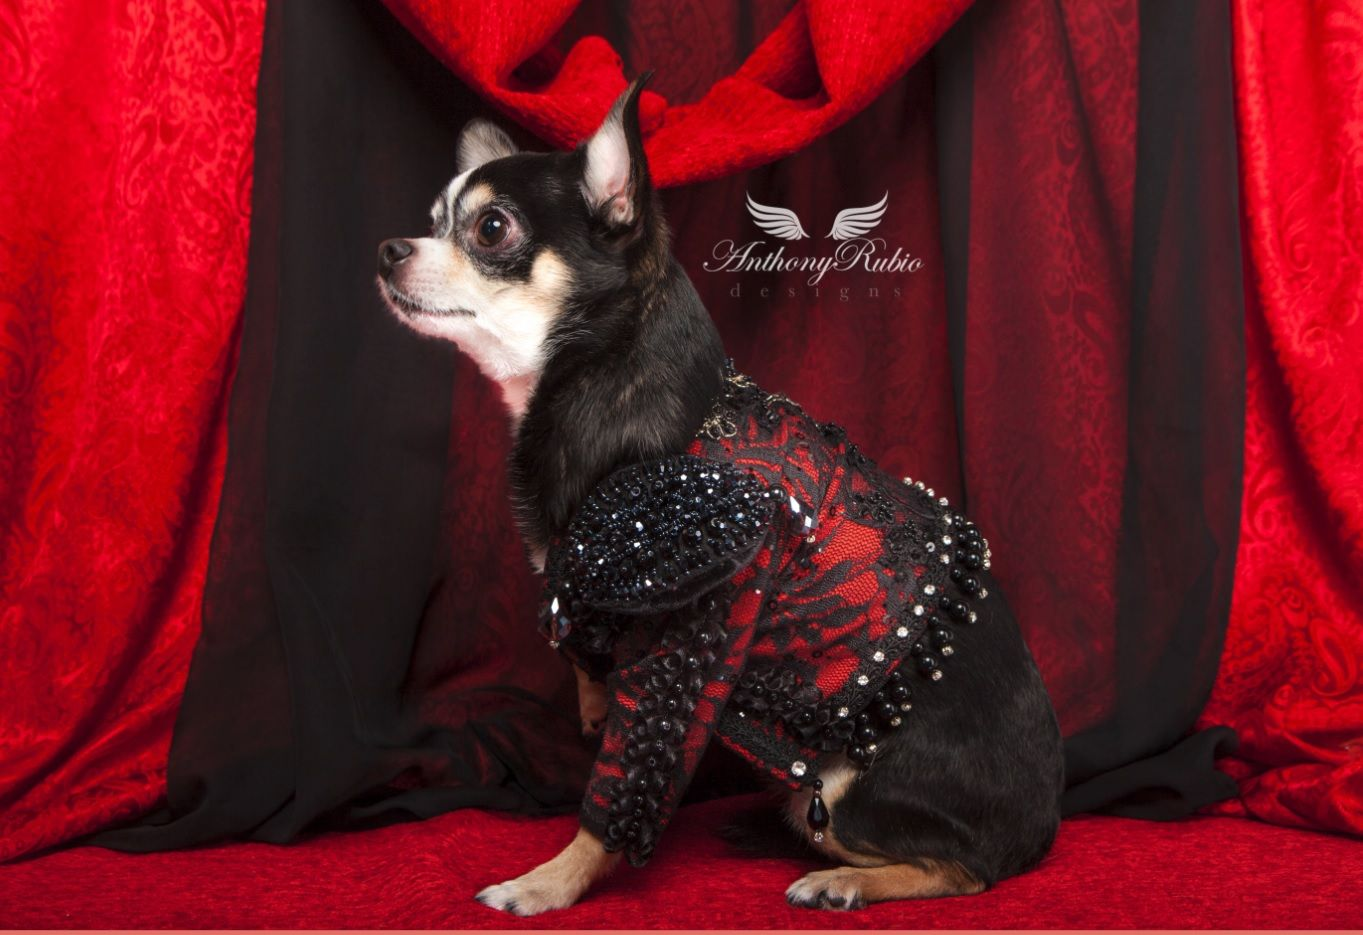 Pin By Margariita Esparraga On Yago In 2020 Animal Fashion Pet Fashion Chihuahua